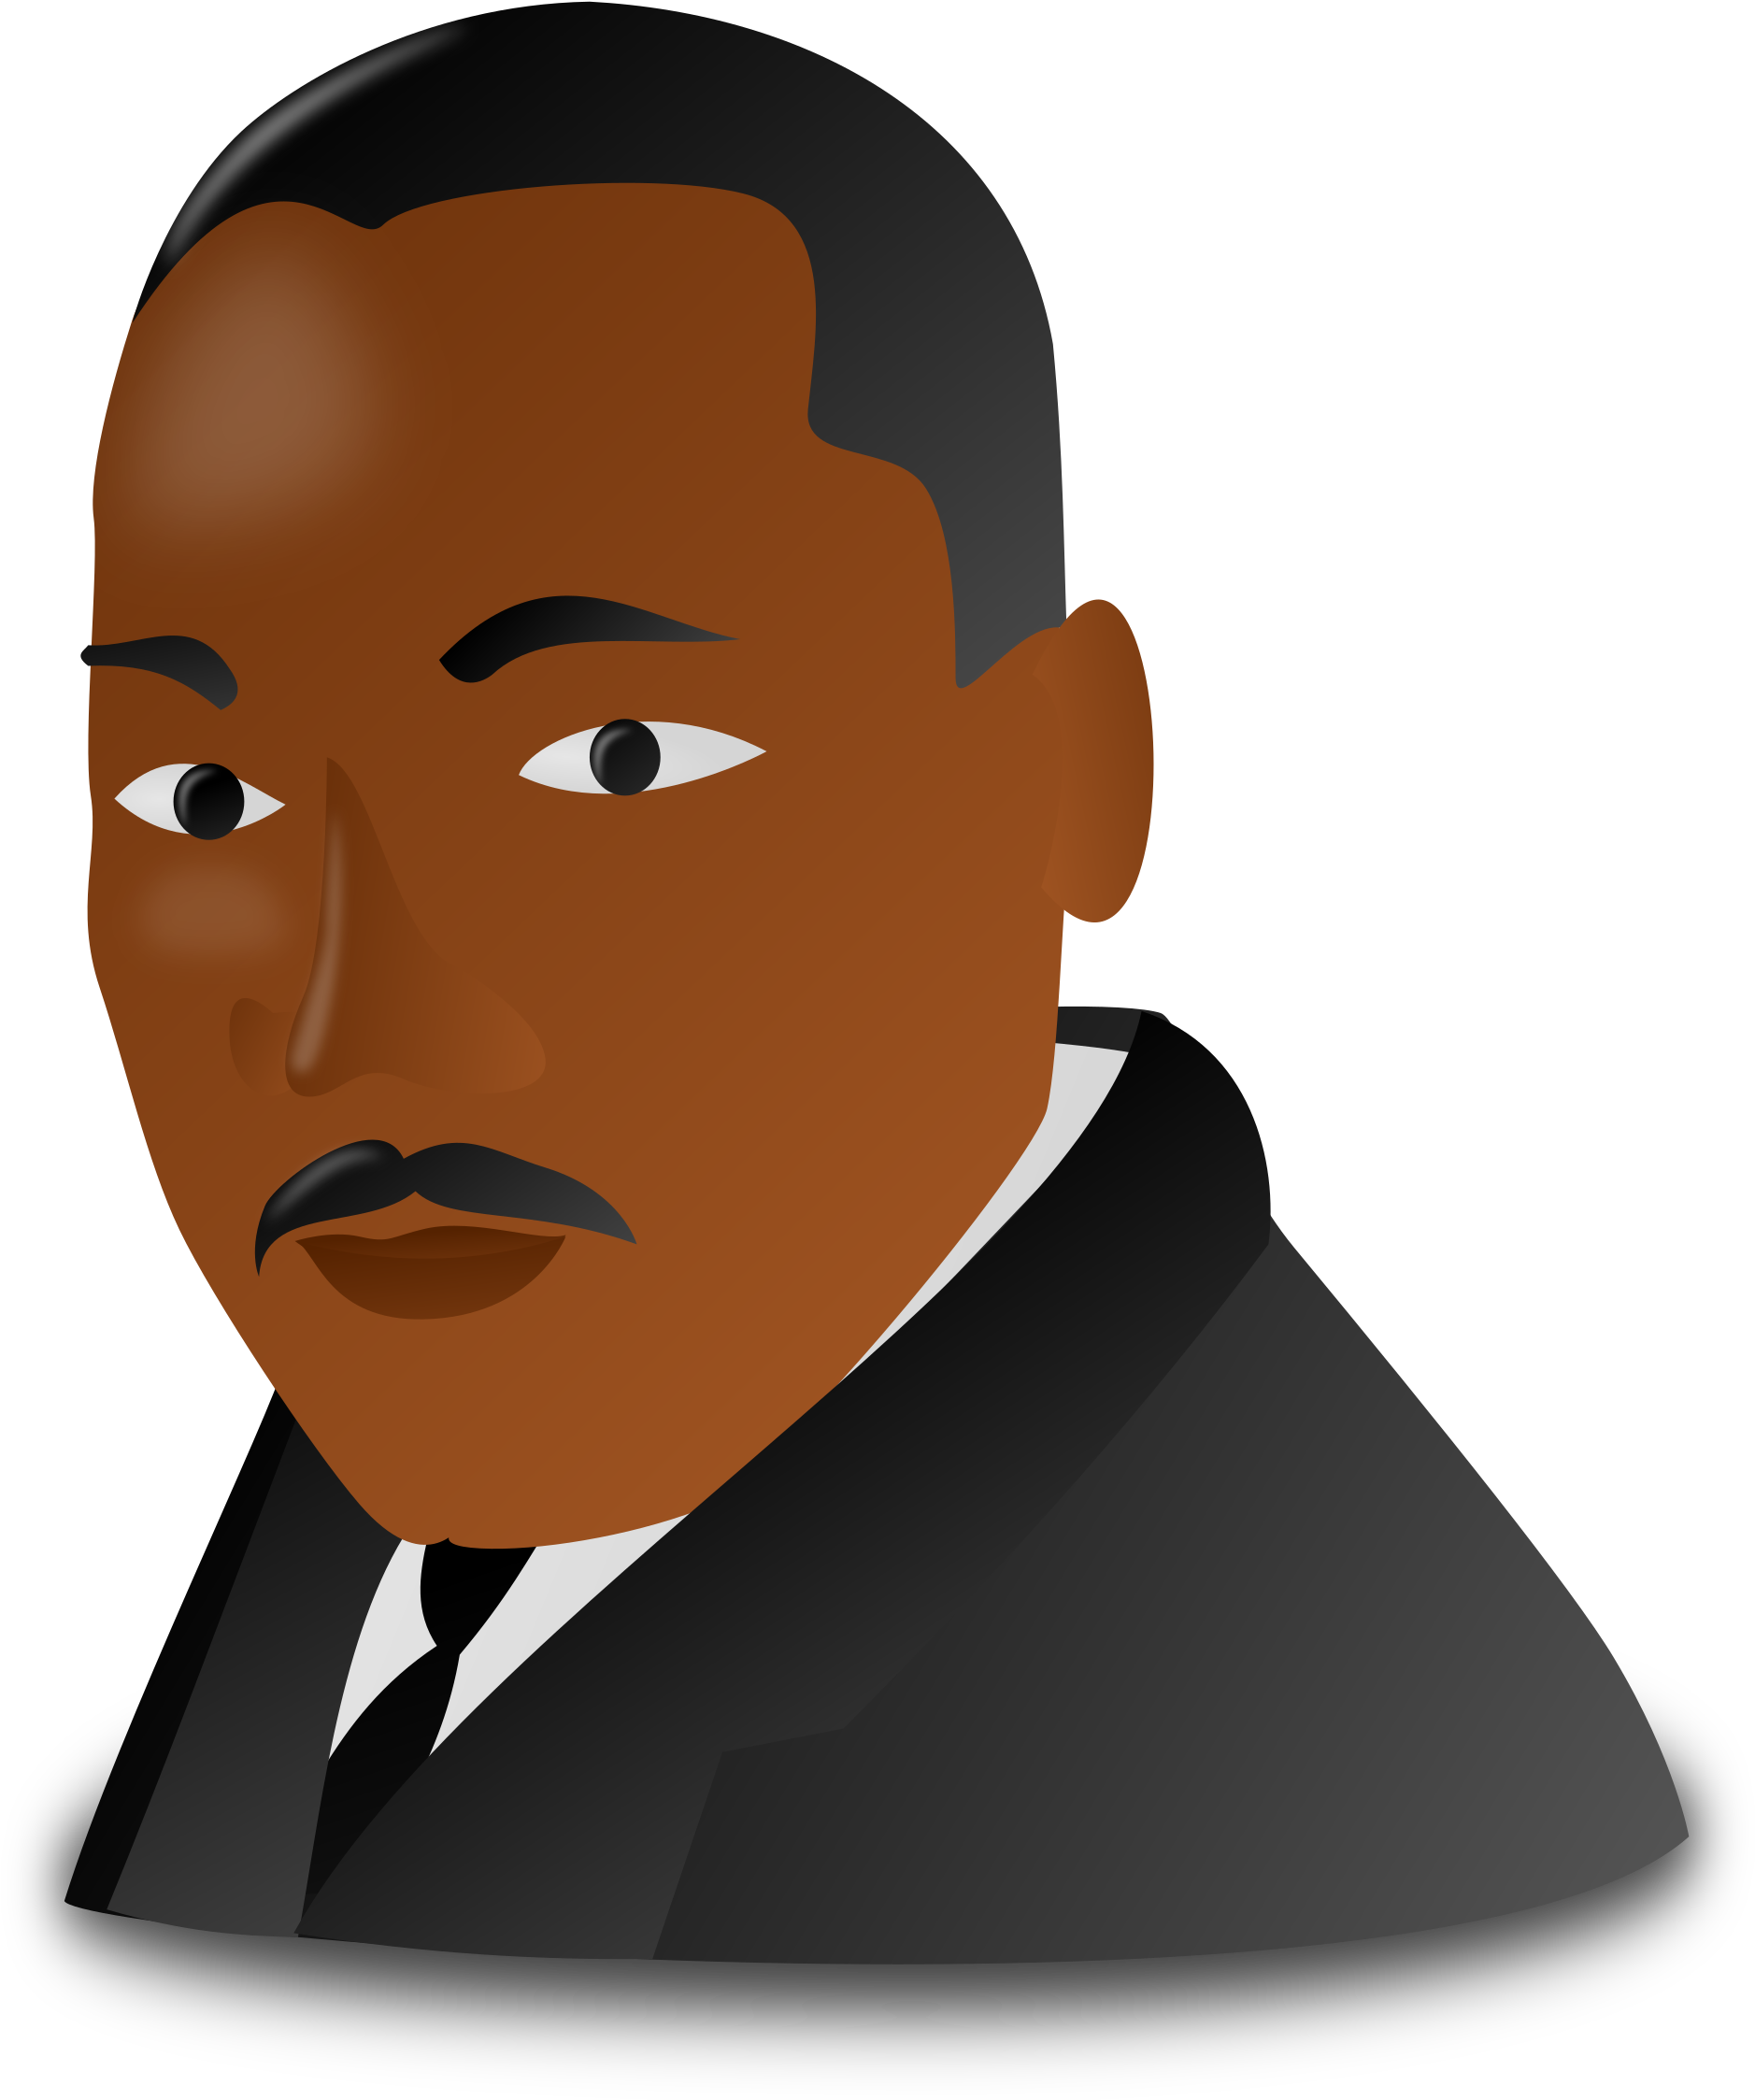 Martin luther king jr day clipart transparent background black and white stock HD Martin Luther King Jr - Martin Luther King Jr Clipart ... black and white stock